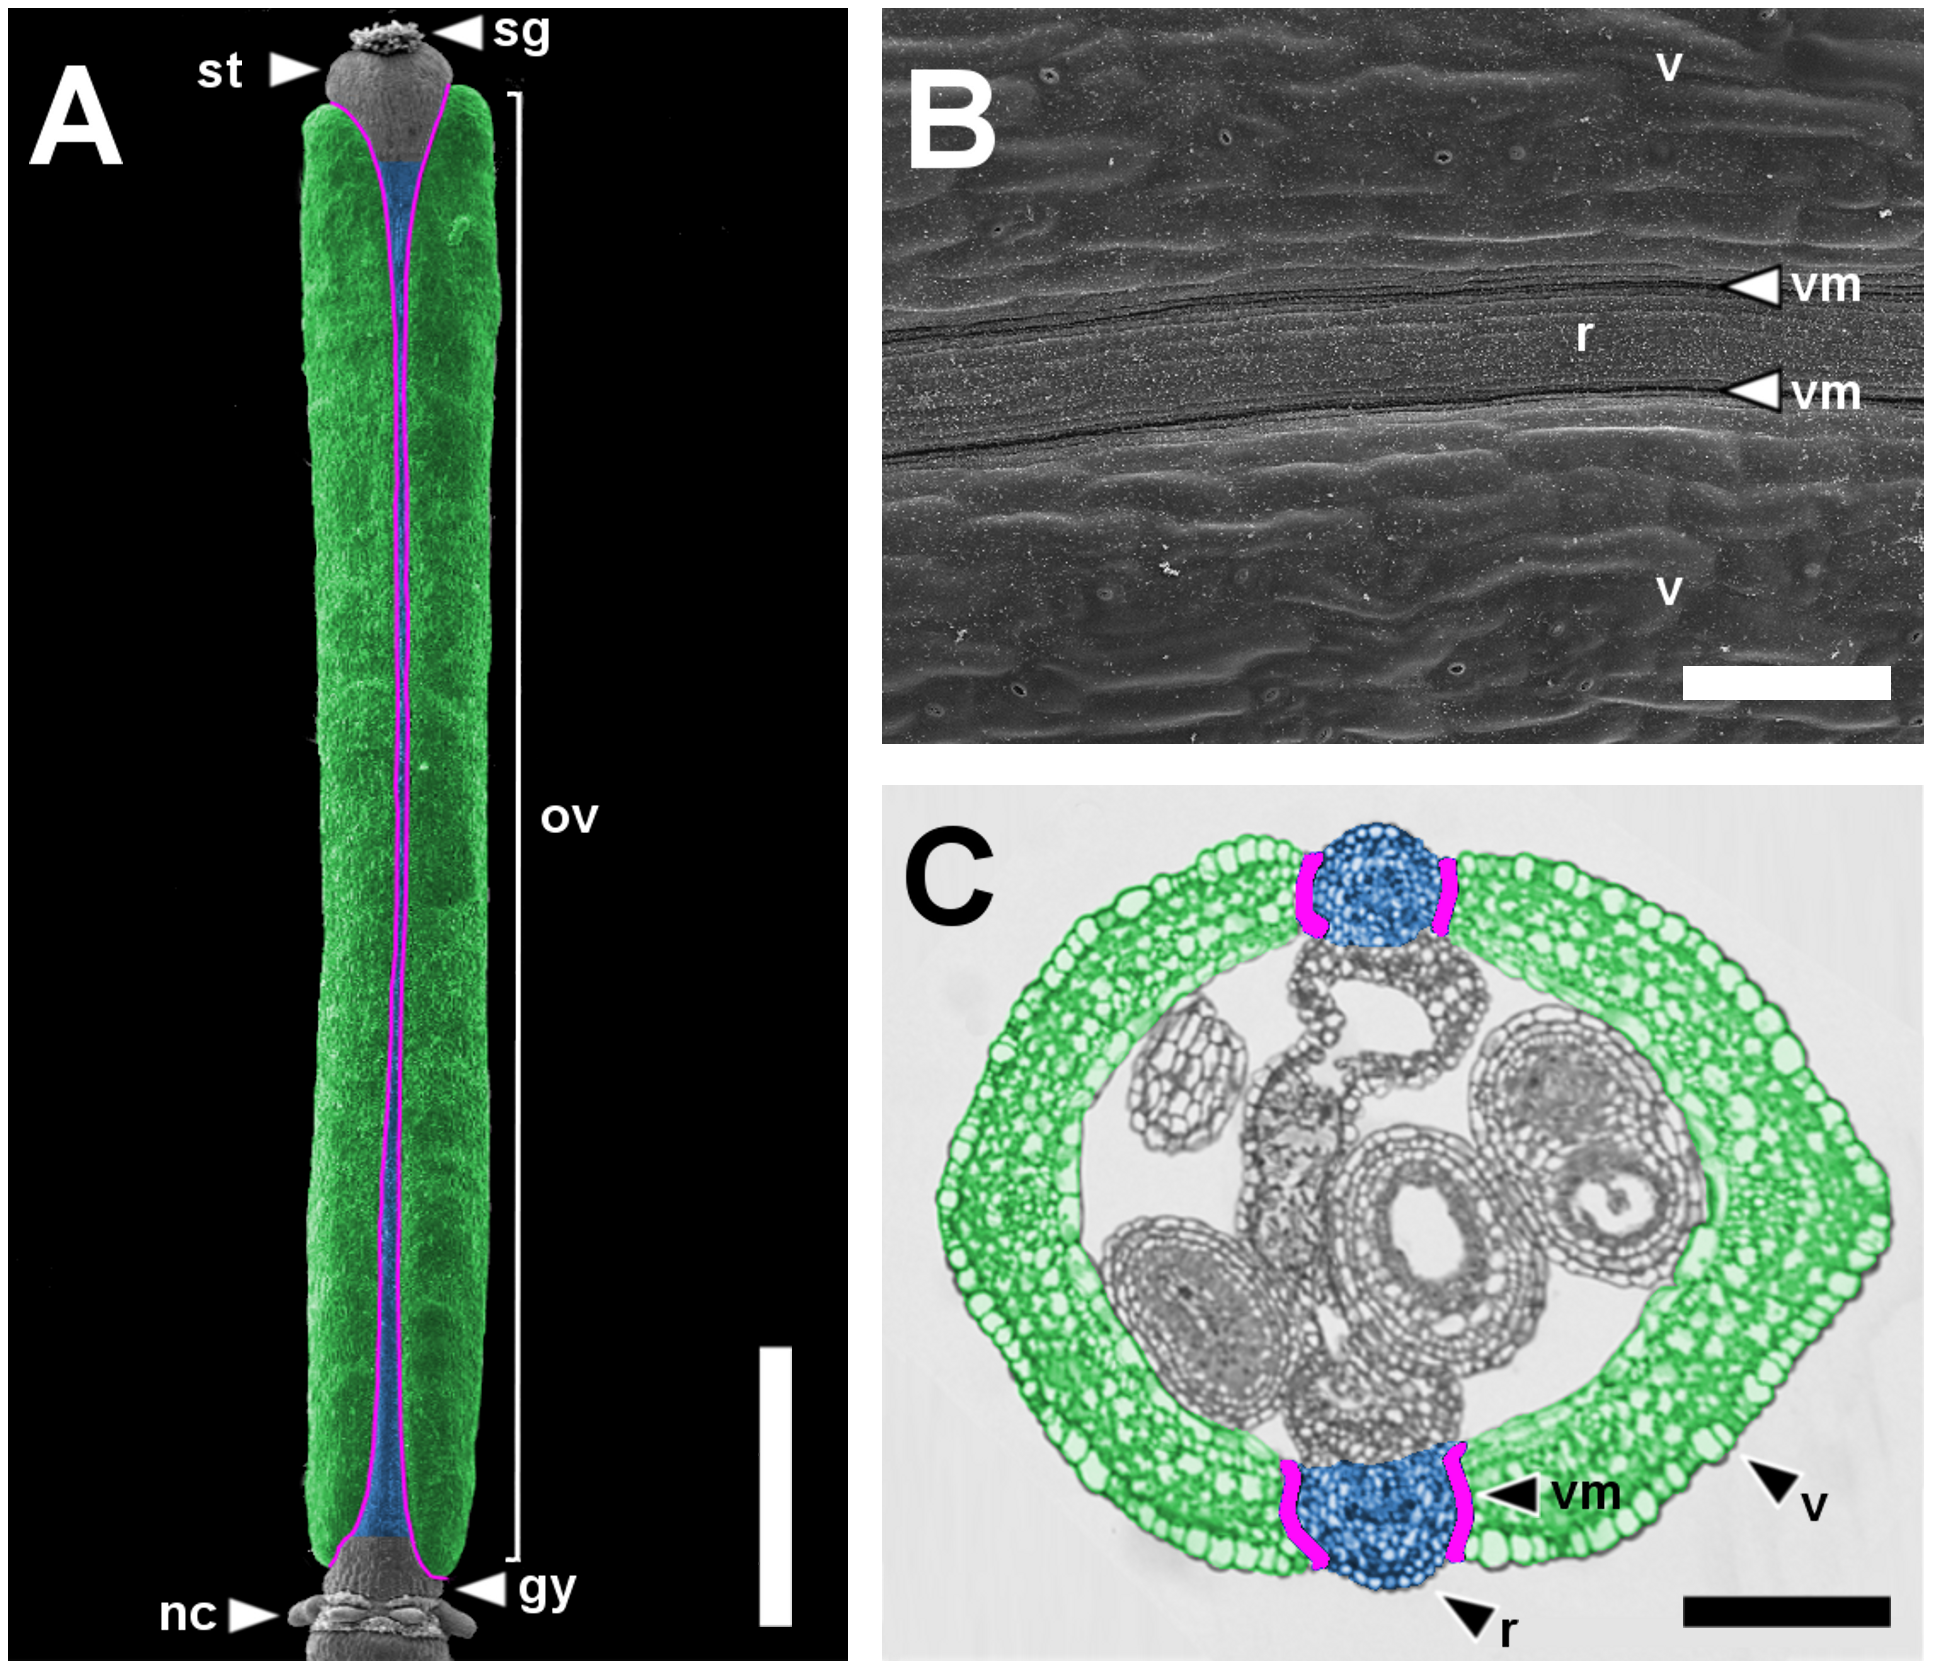 Main pattern elements along the mediolateral axis of the <i>Arabidopsis</i> wild-type fruit.